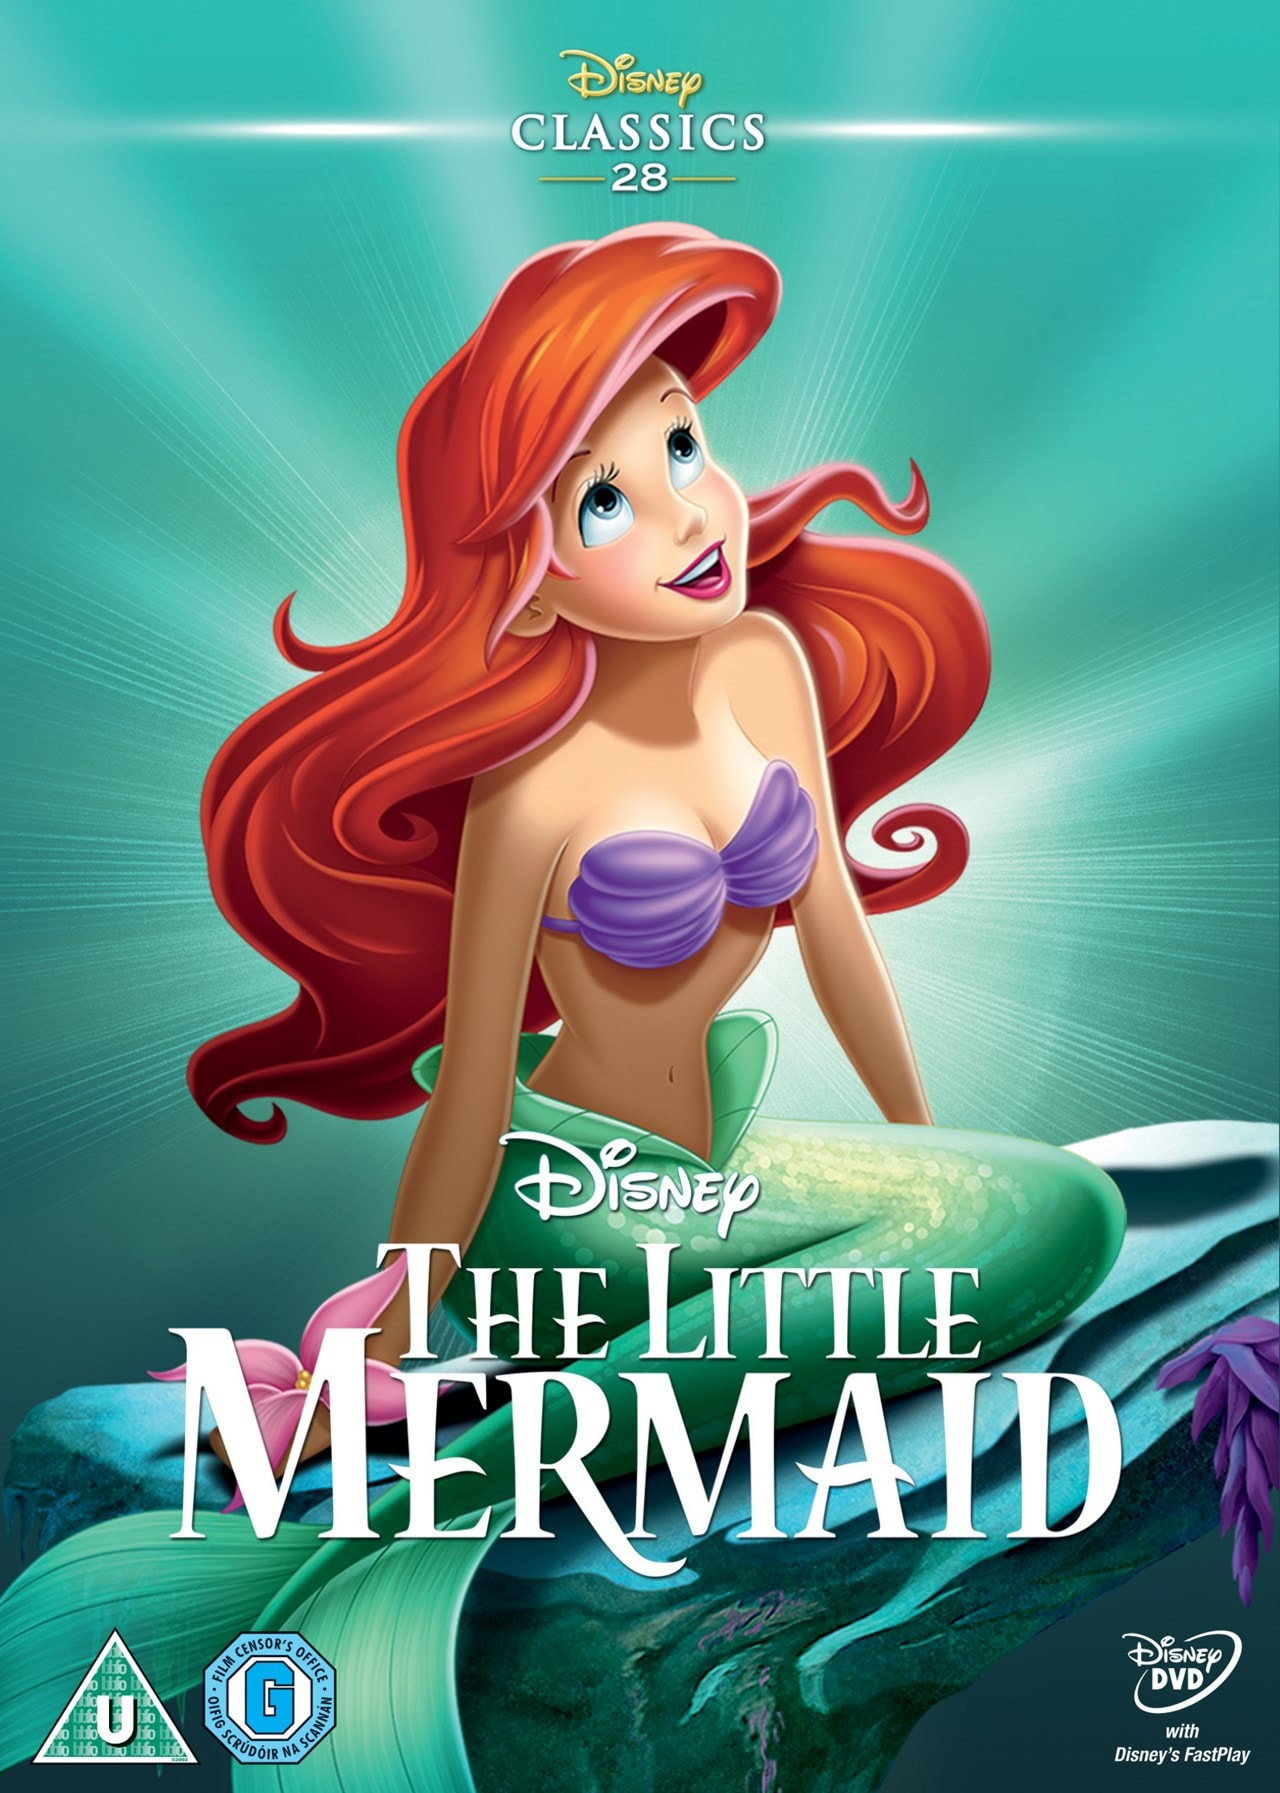 The Little Mermaid (Disney) - 1